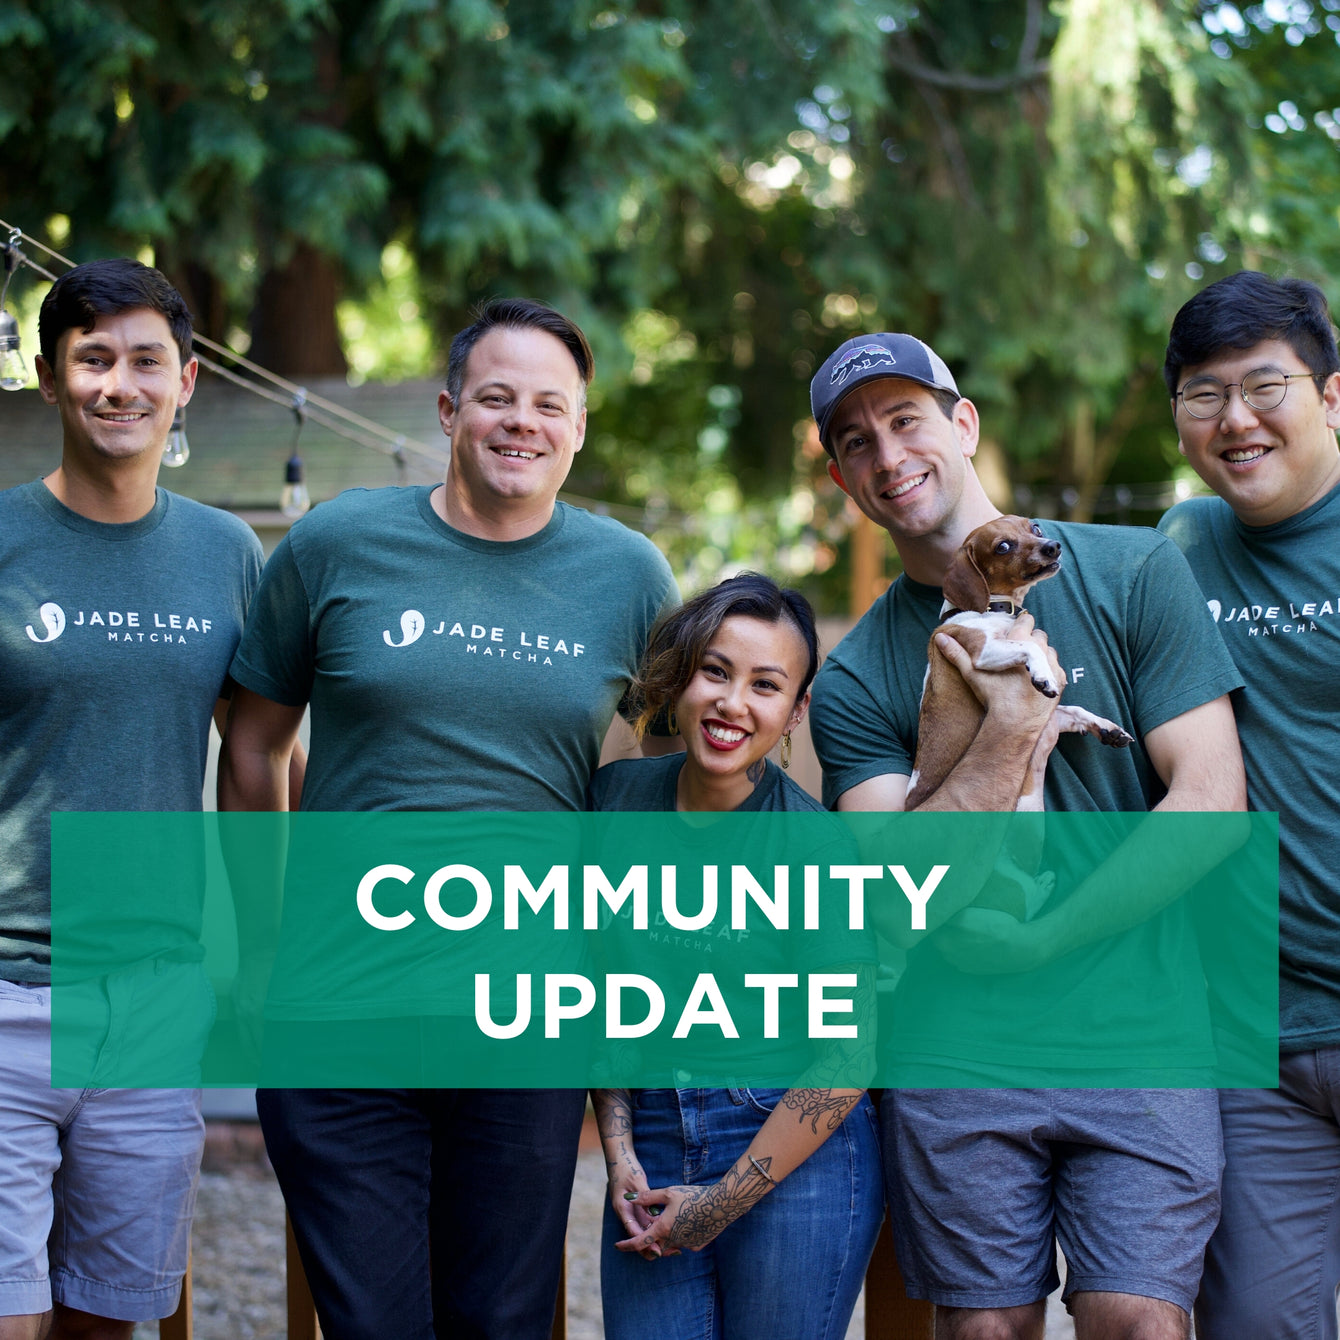 Community Update + Discounts for Matcha at Home 💚